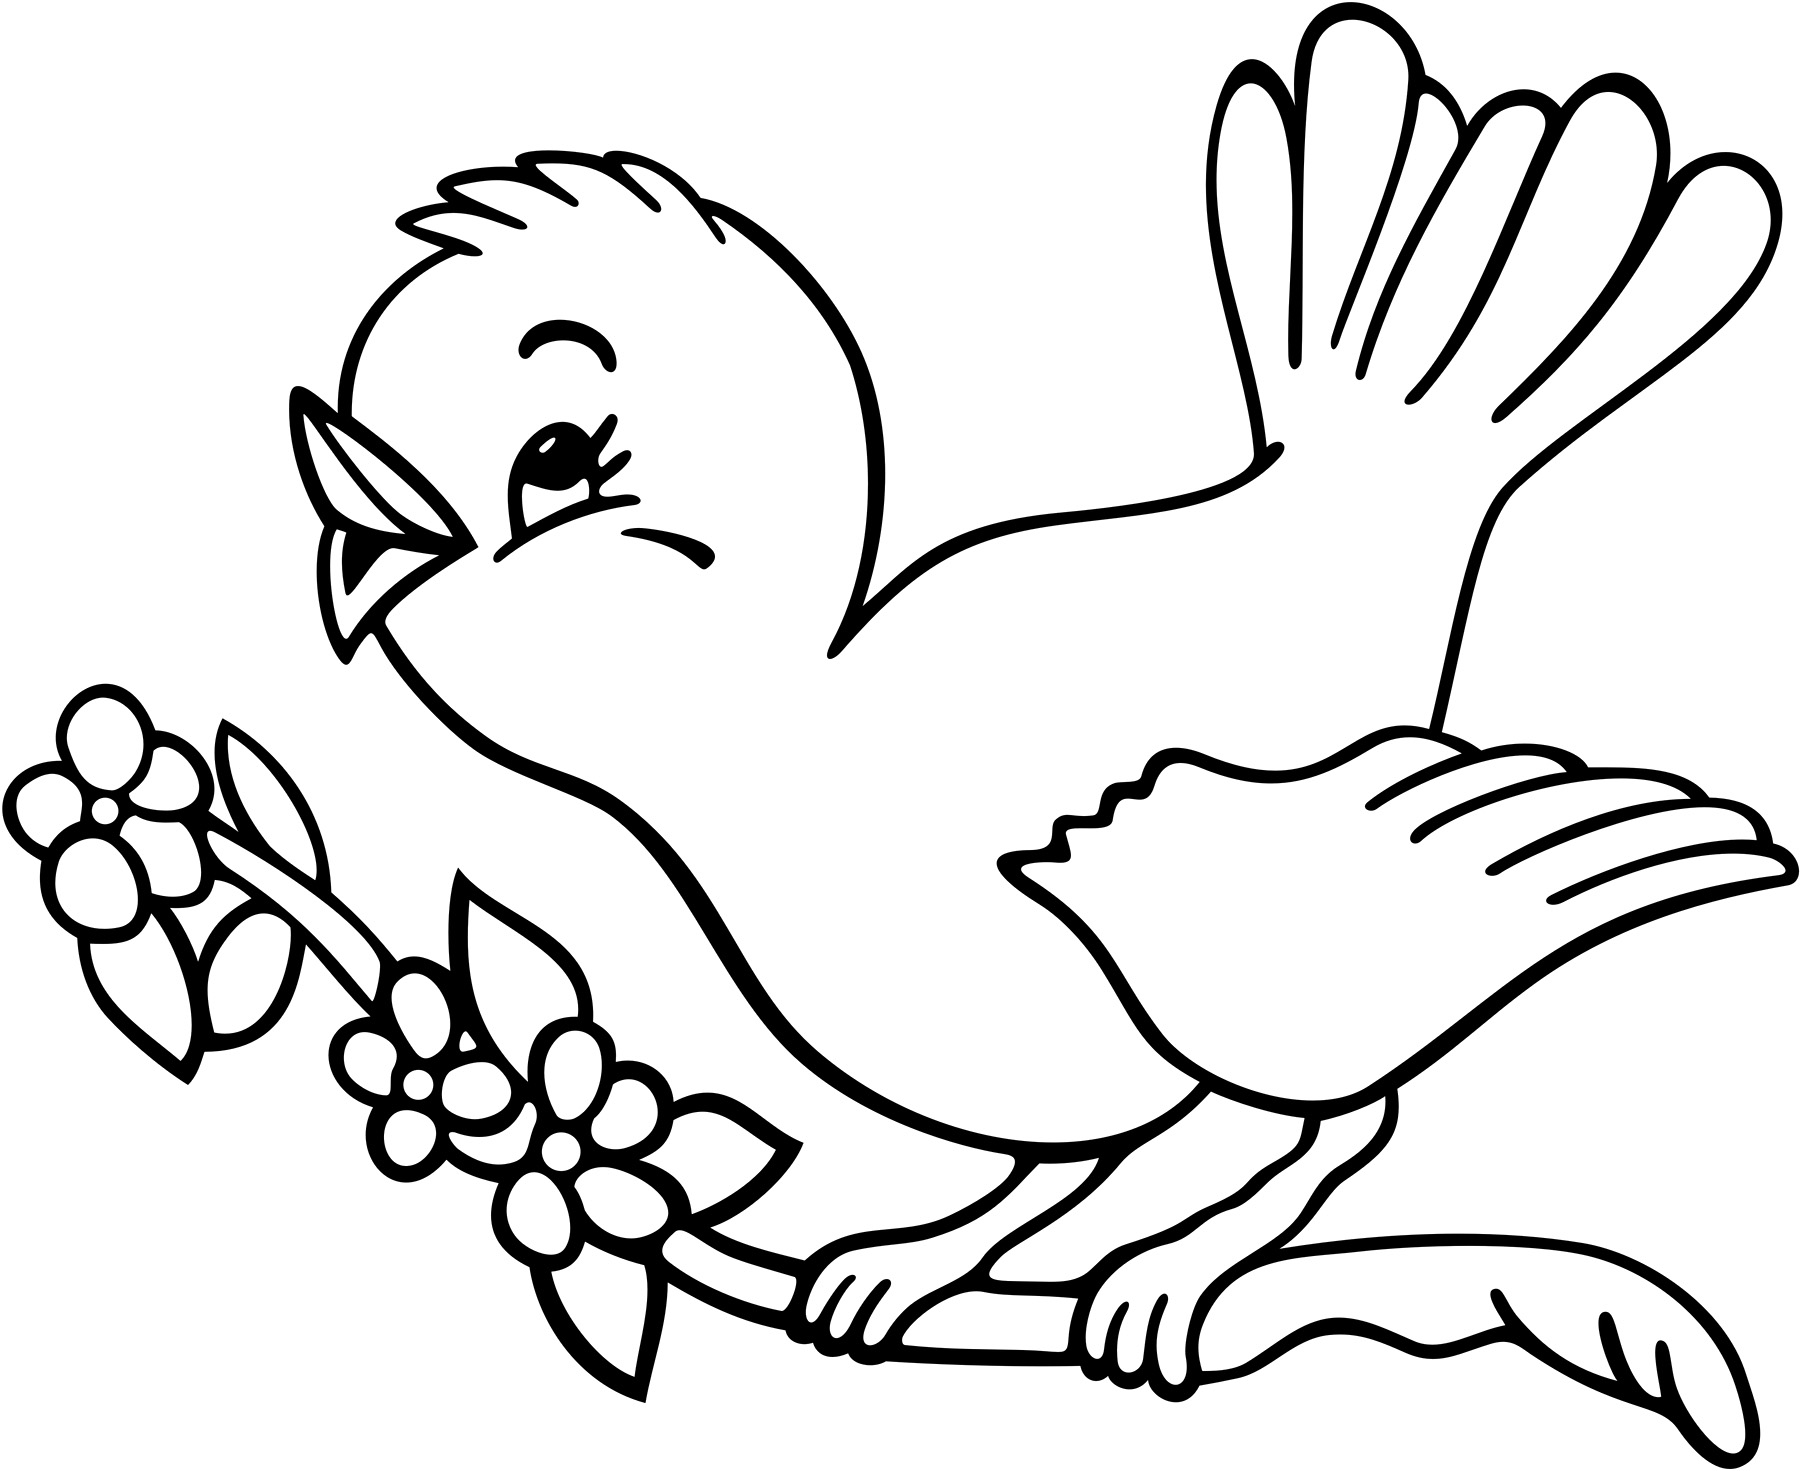 - Color Coloring Book Transparent & PNG Clipart Free Download - YWD